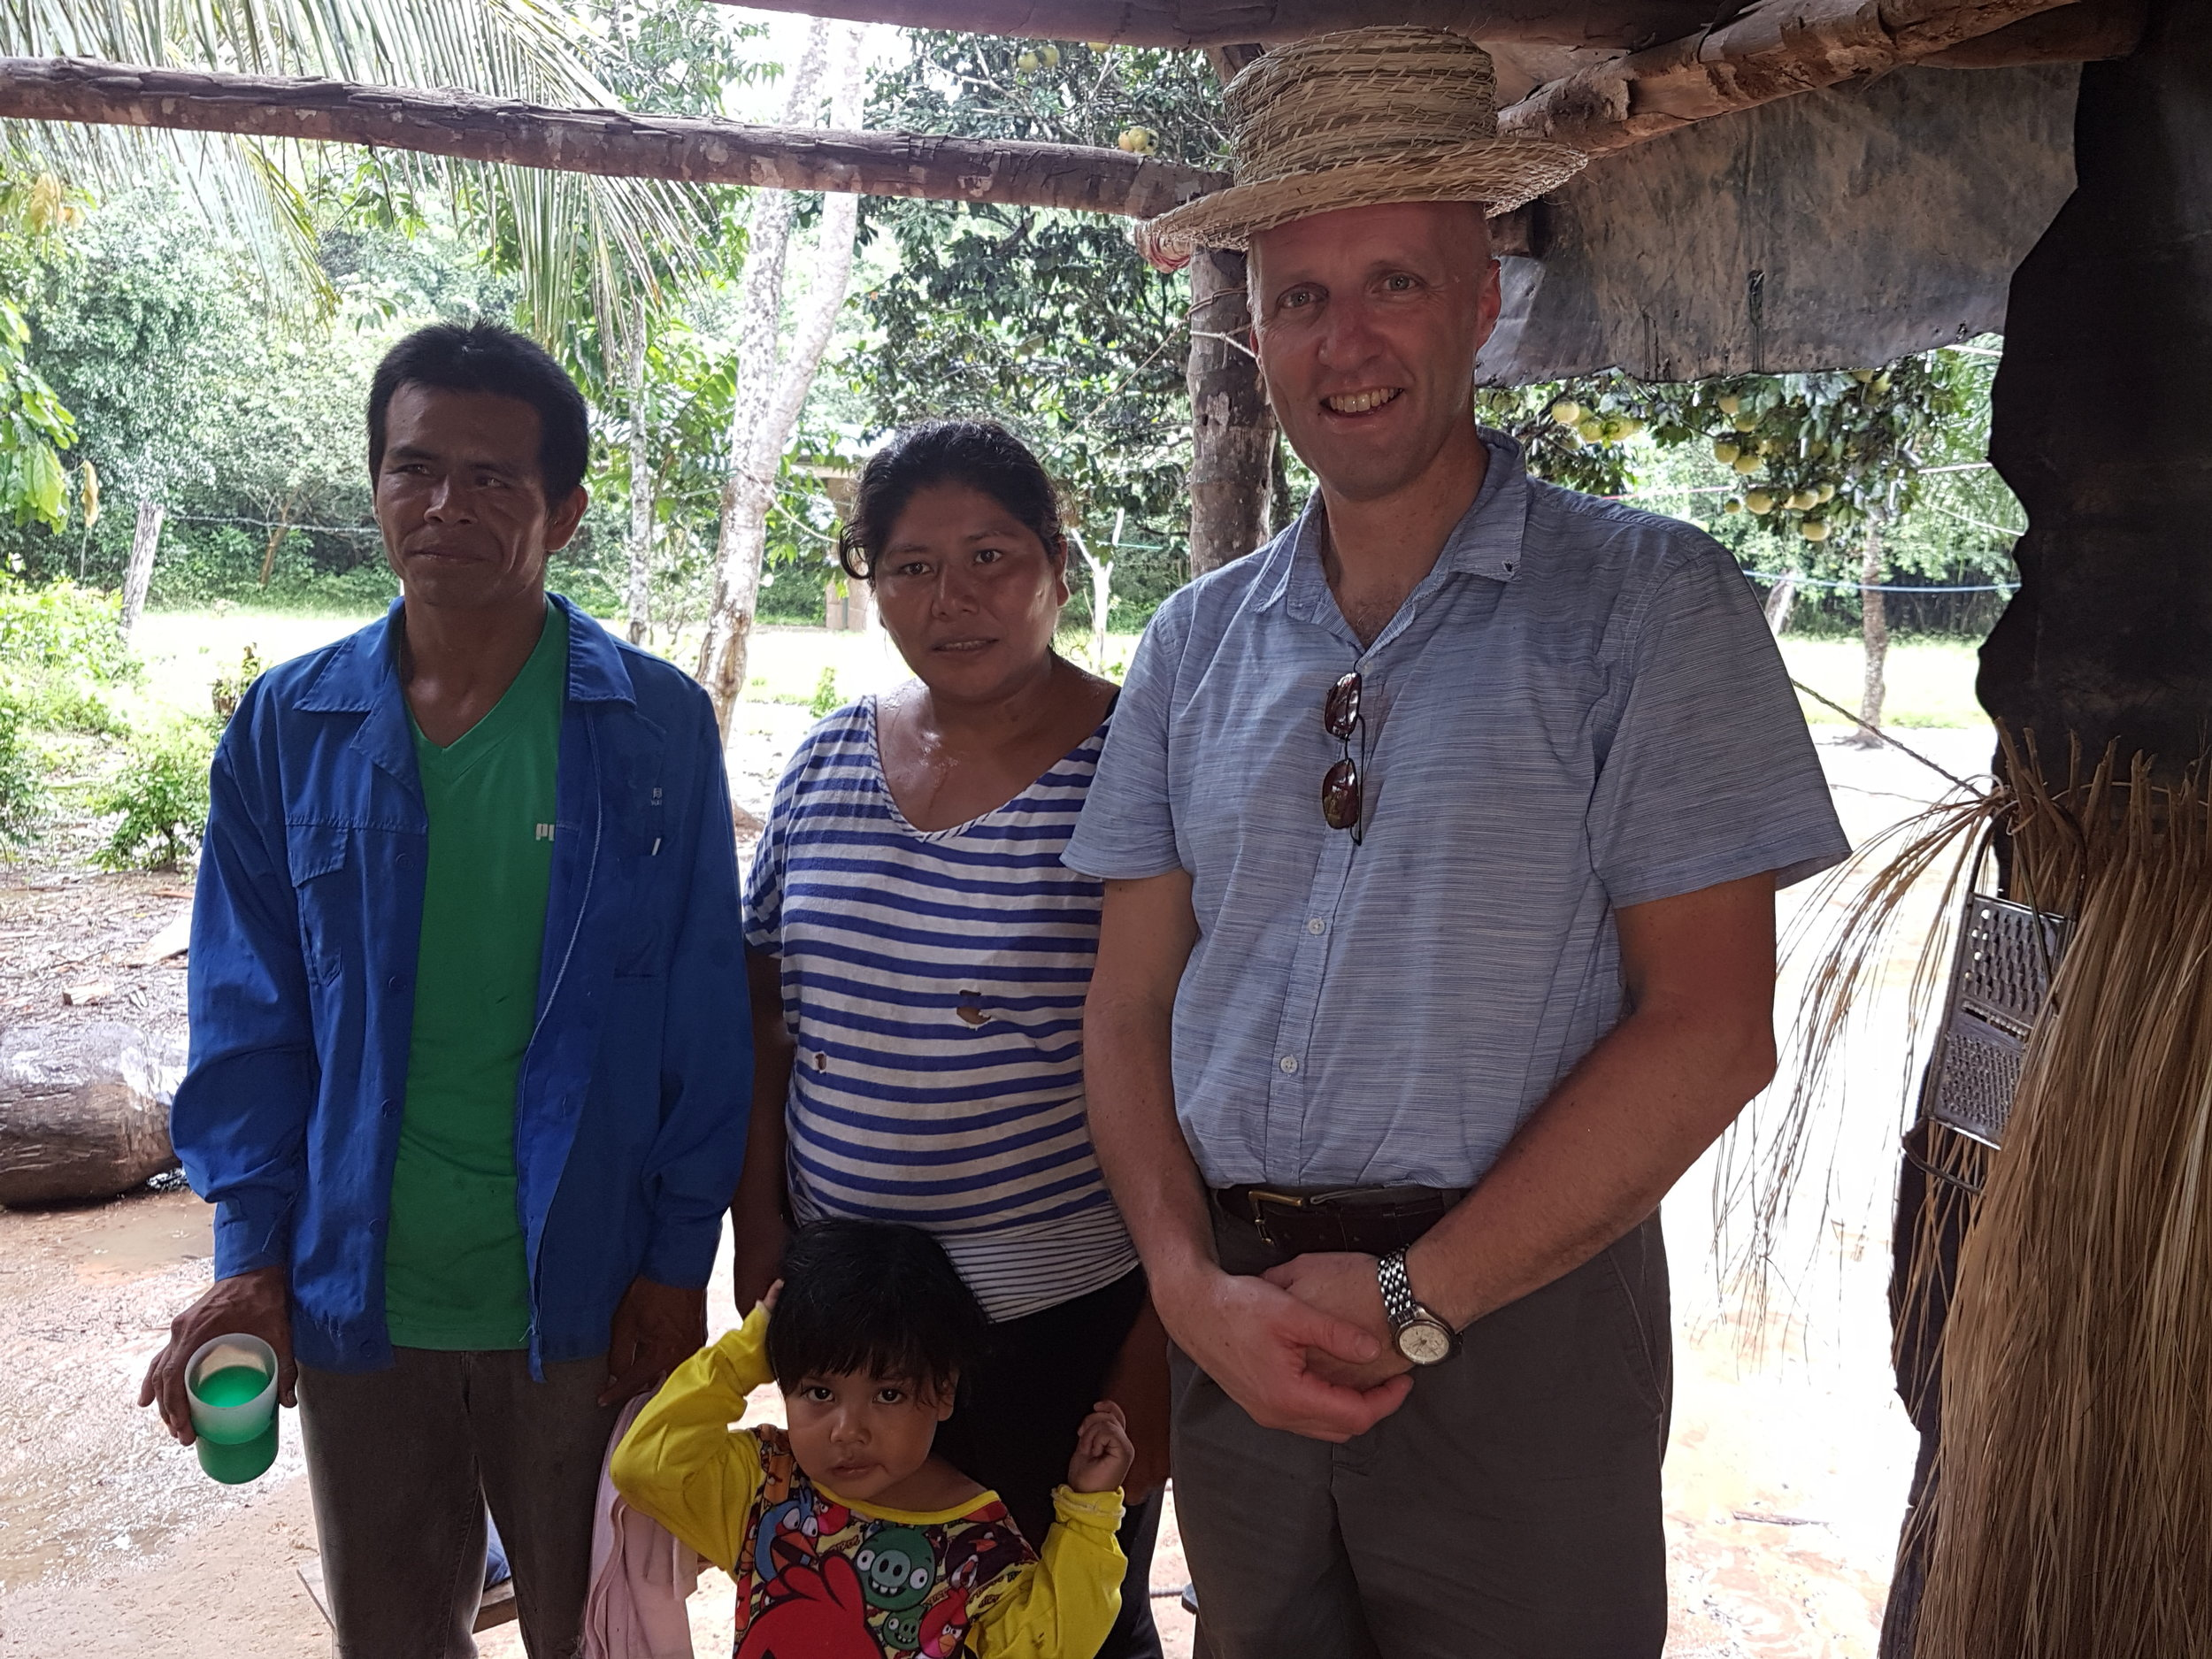 Laurence pictured with Mariella and her family,wearing the hat she made for him.